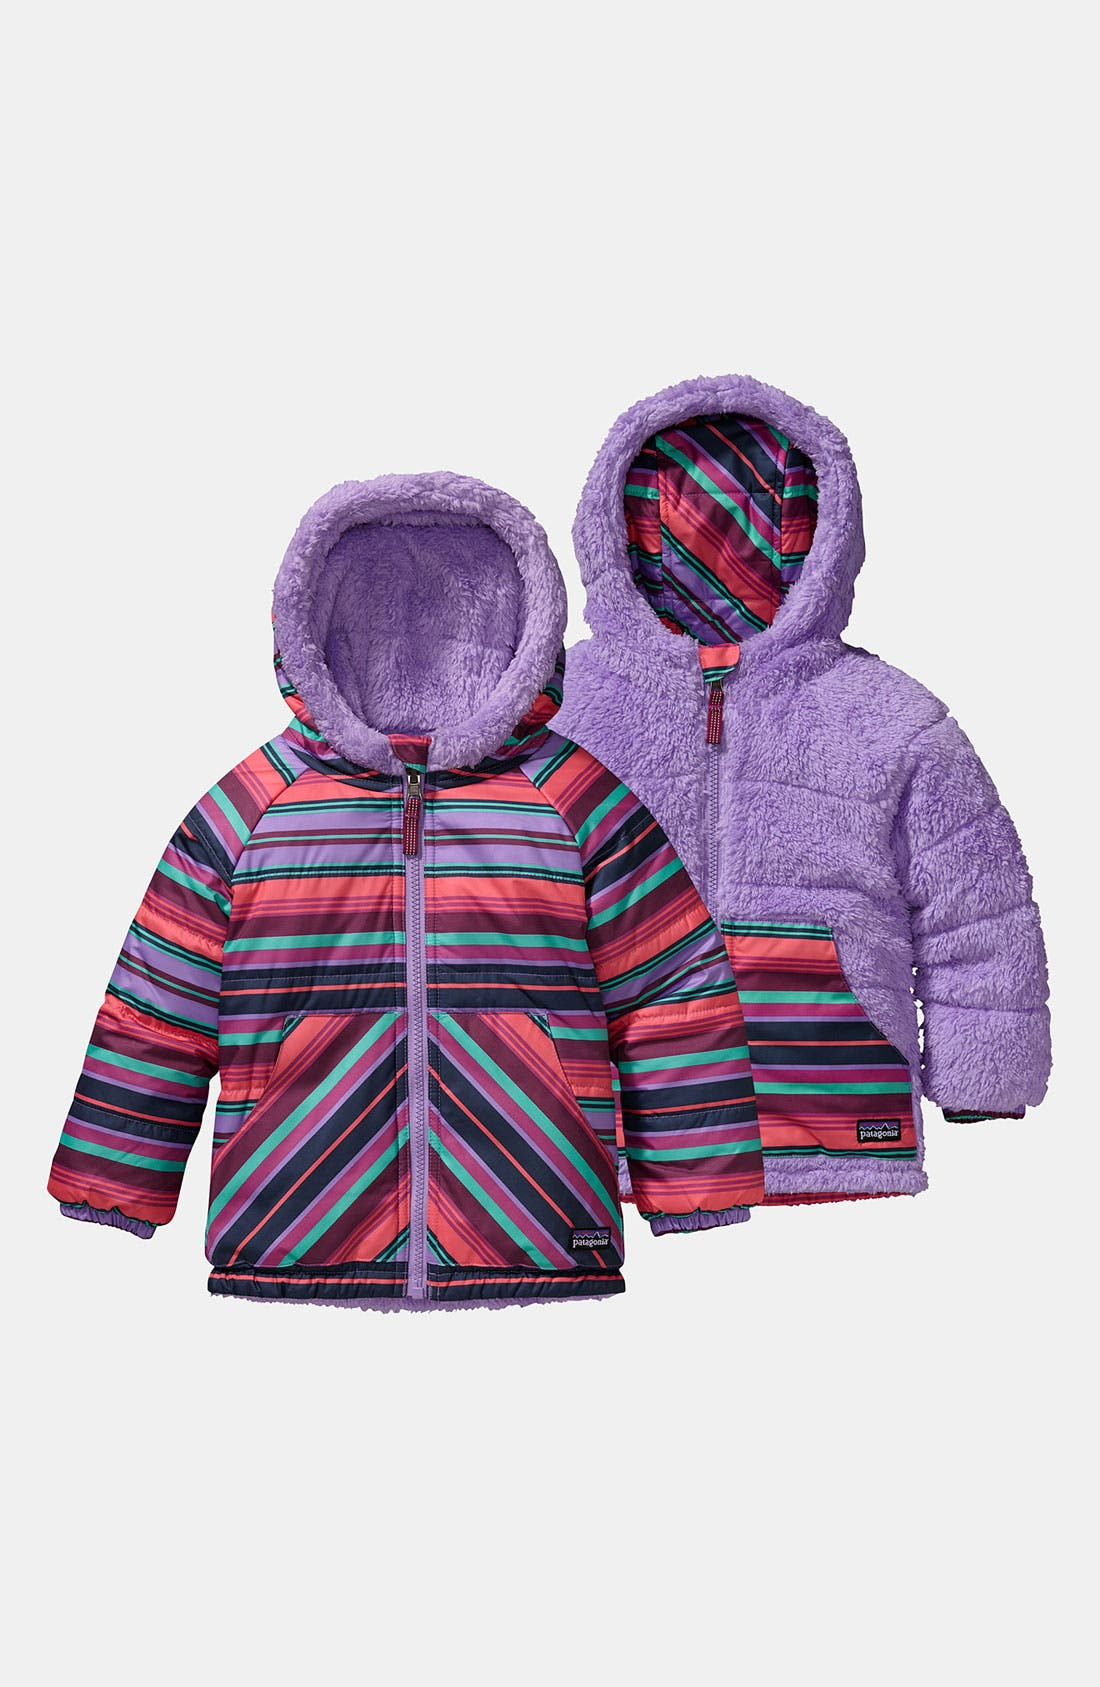 Main Image - Patagonia Reversible Jacket (Toddler)